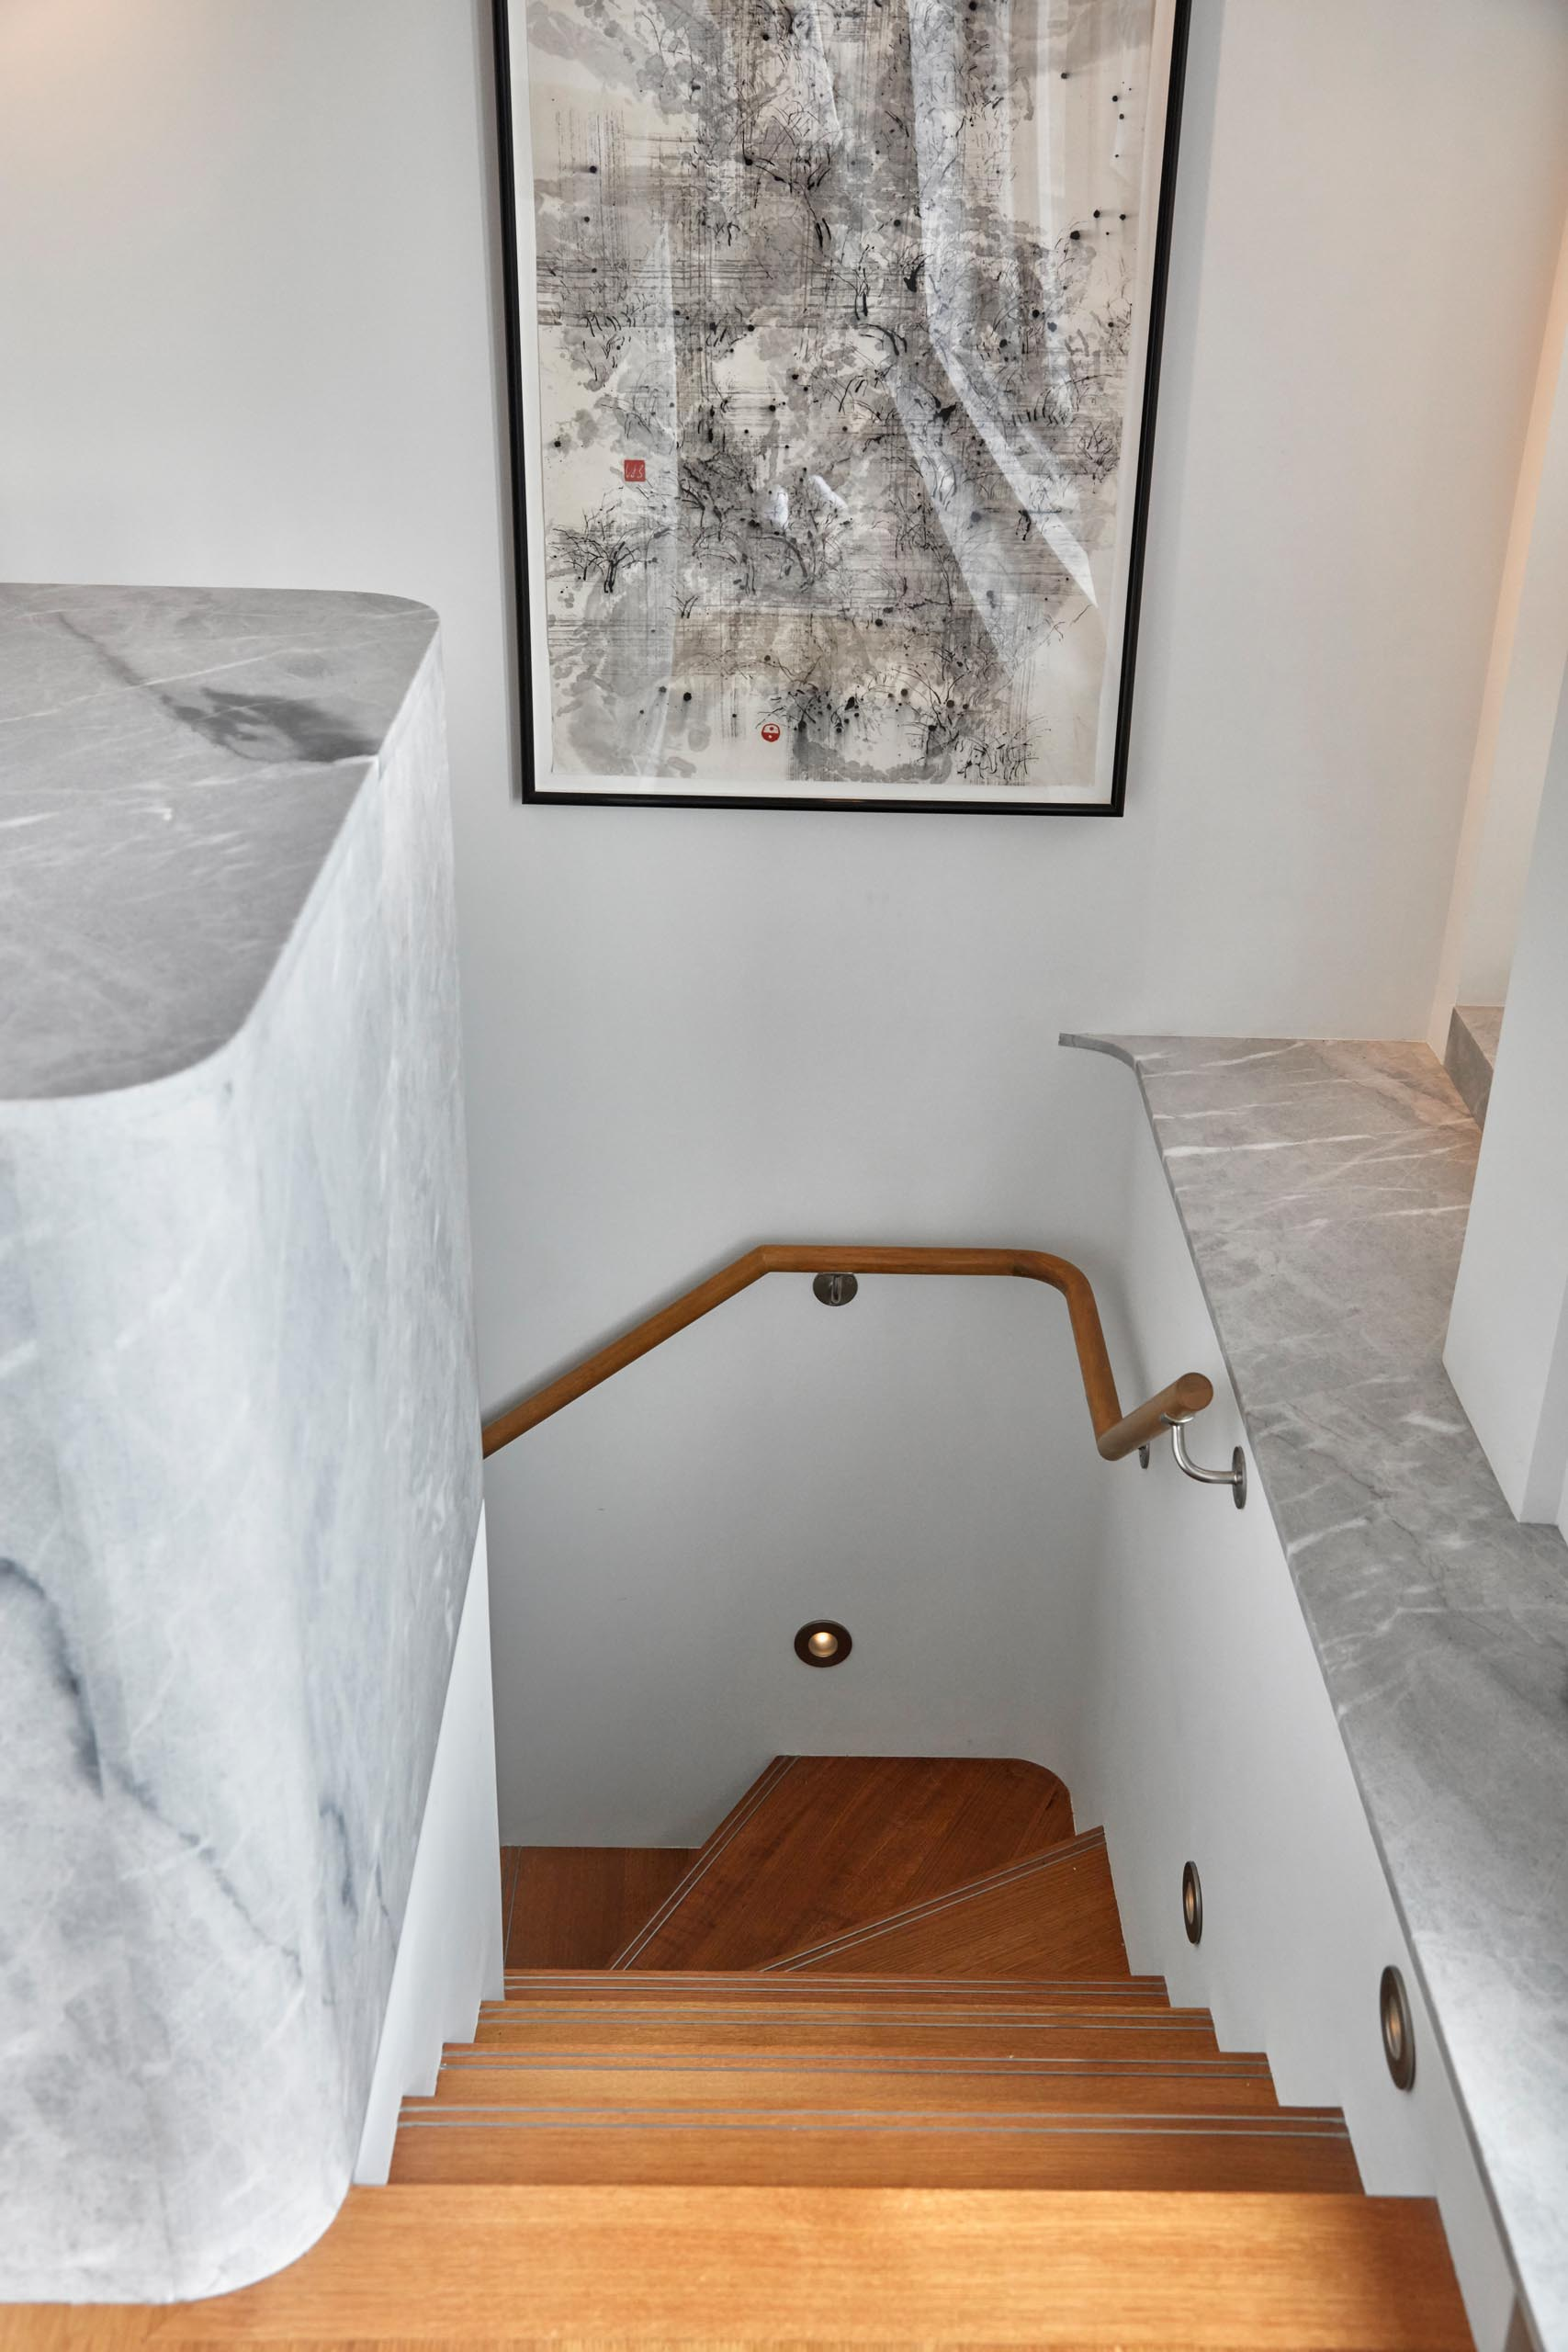 Contemporary stairs with wood treads and small lights built into the white walls.